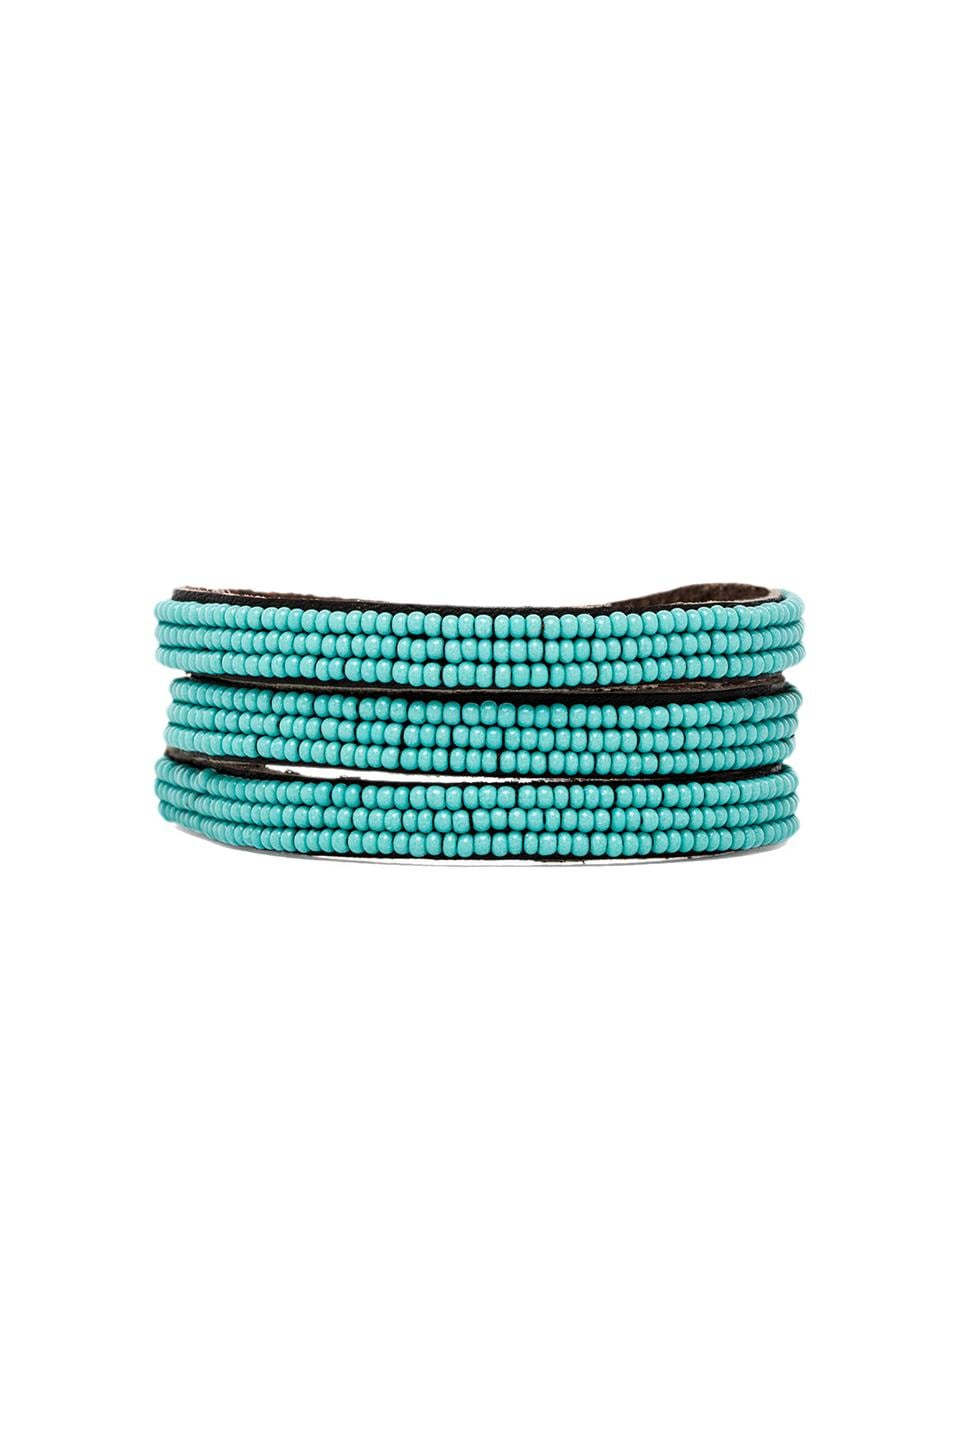 CHAN LUU Beaded Wrap Bracelet in New Turquoise